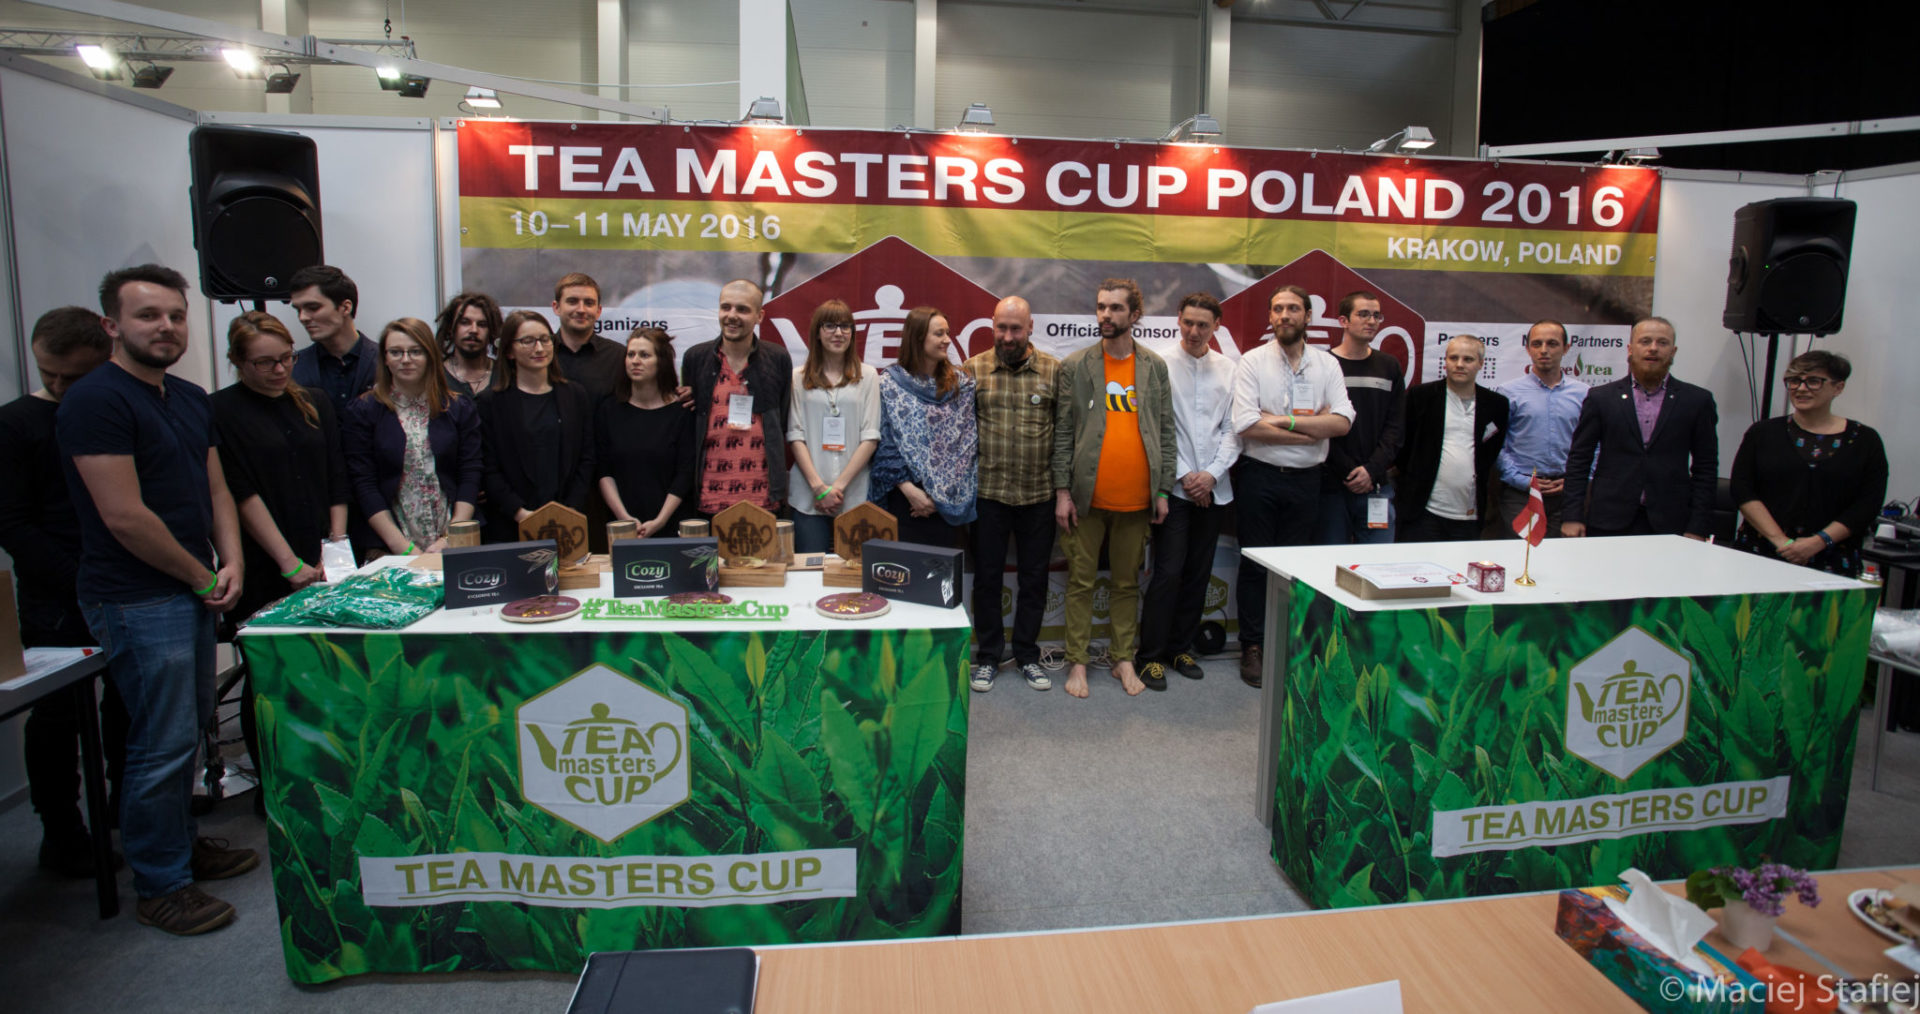 Relacja z Tea Masters Cup Poland 2016